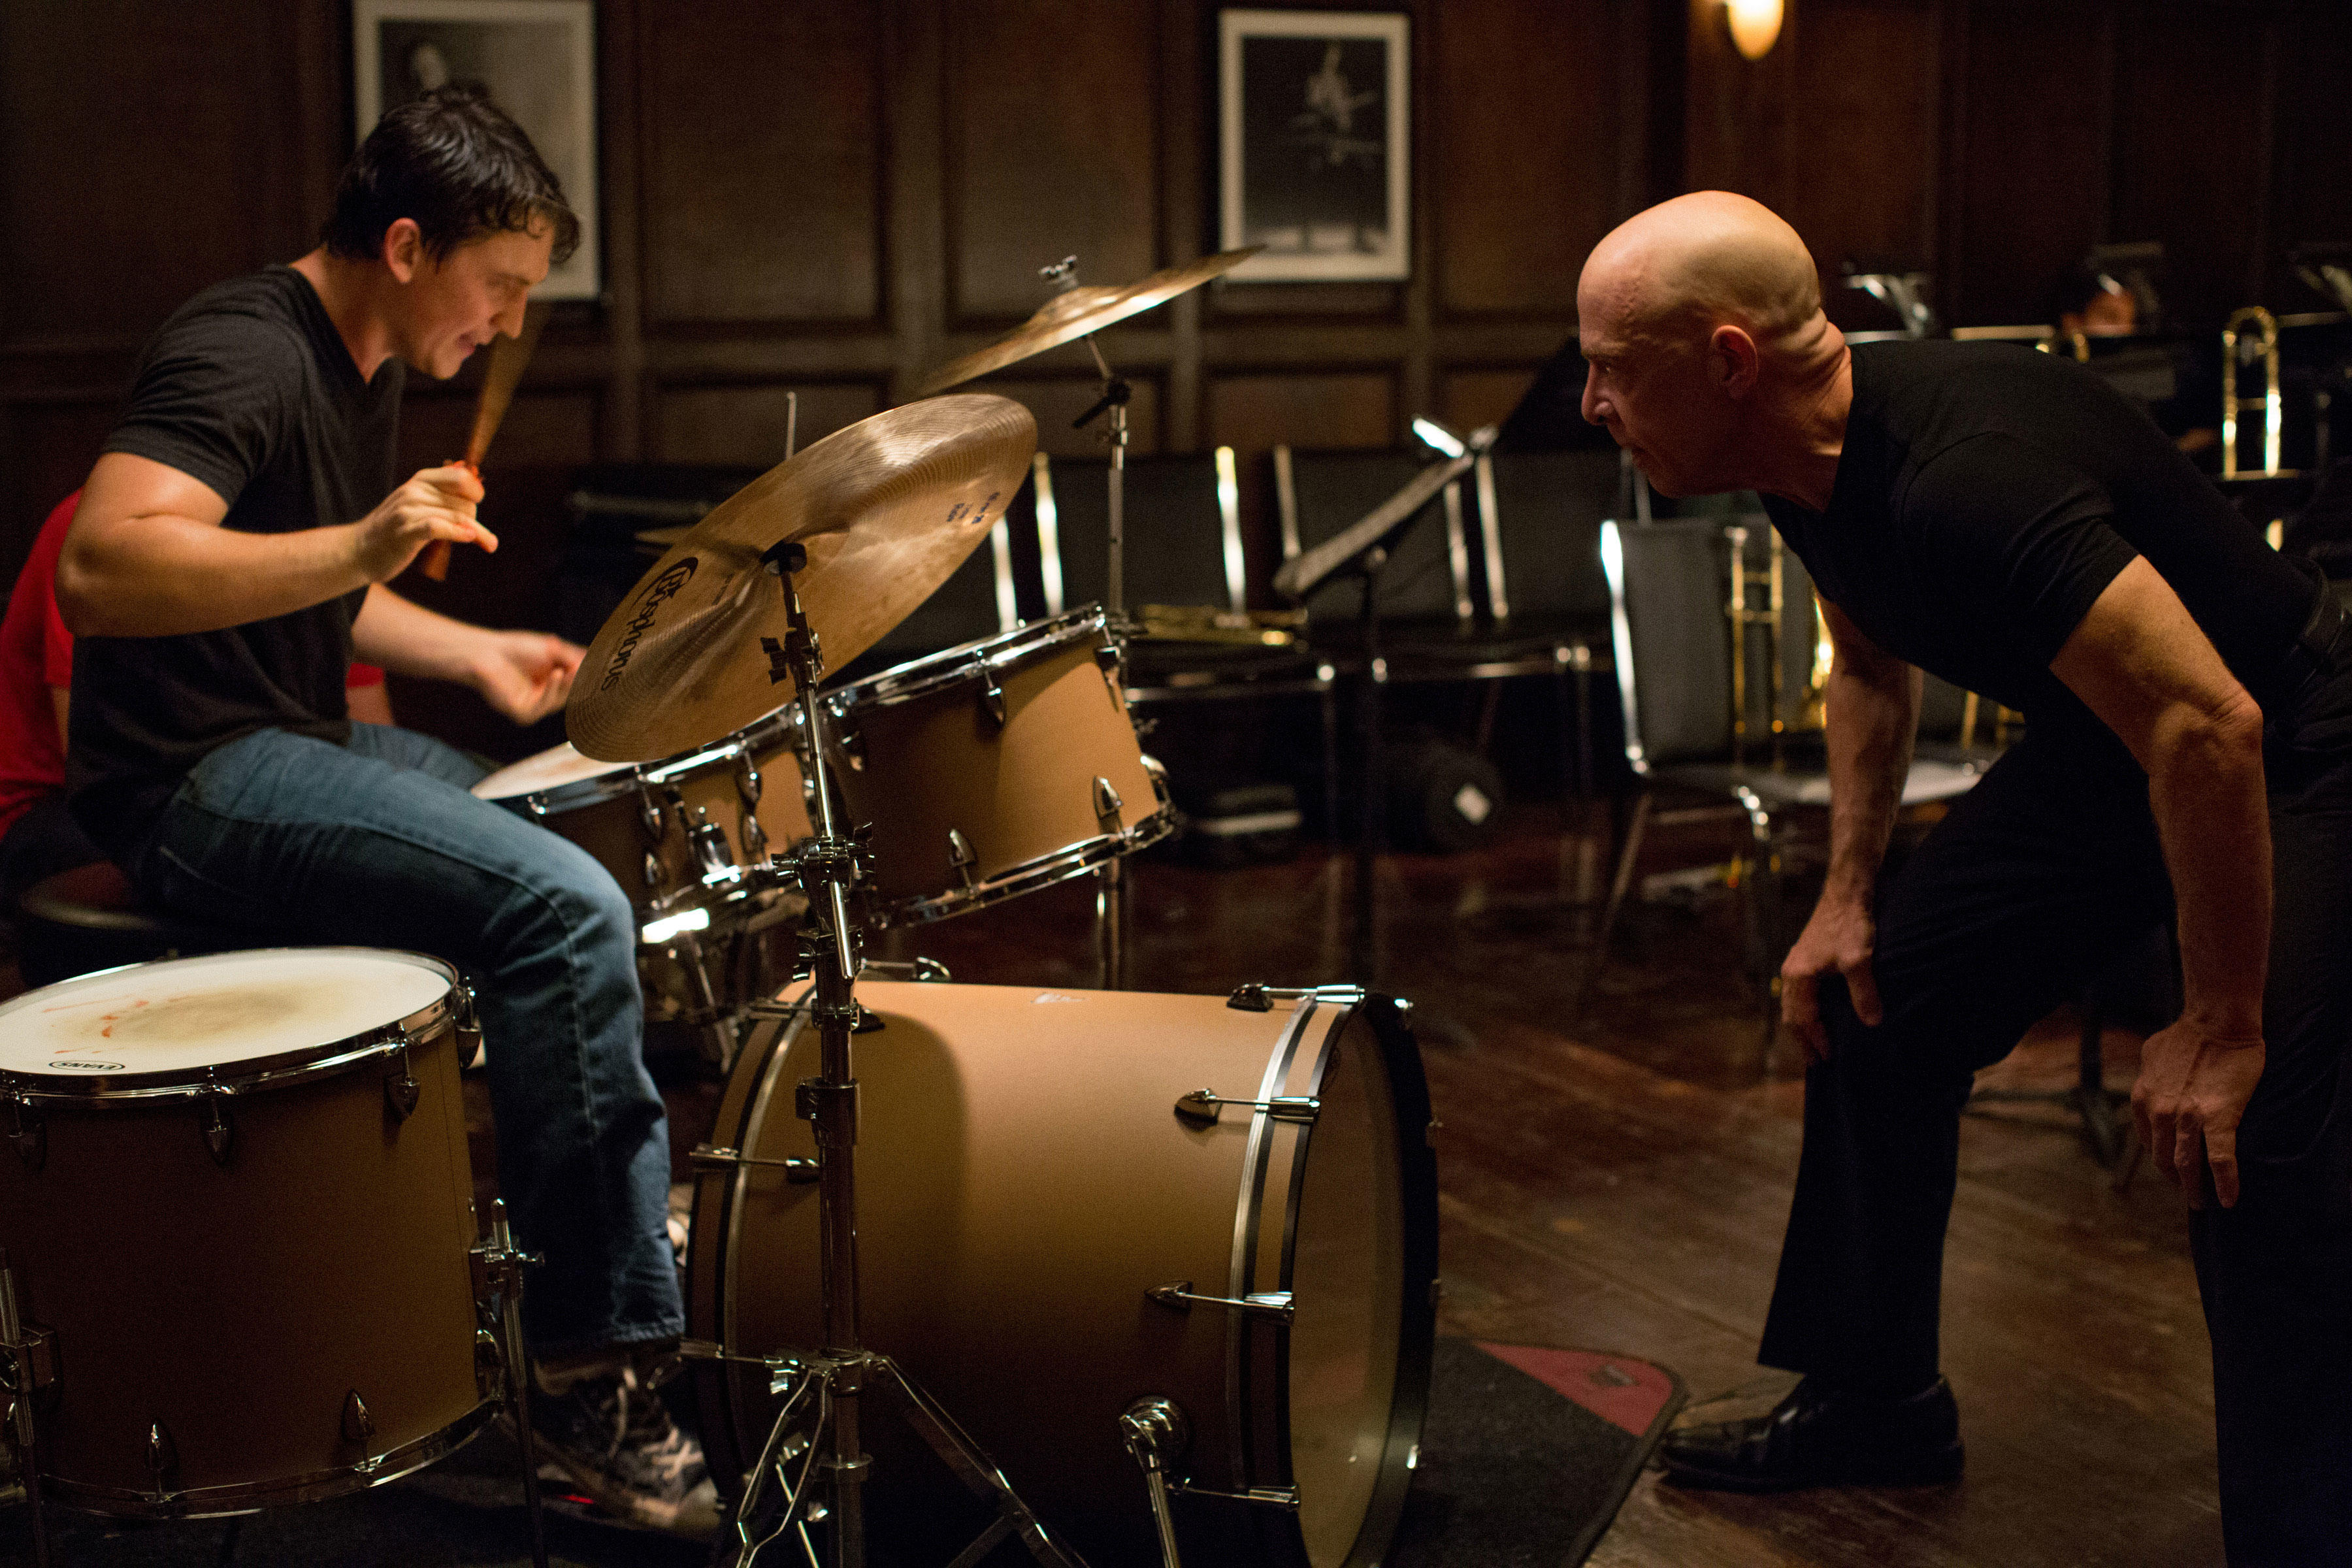 Miles Teller as Andrew and J.K. Simmons as Fletcher in